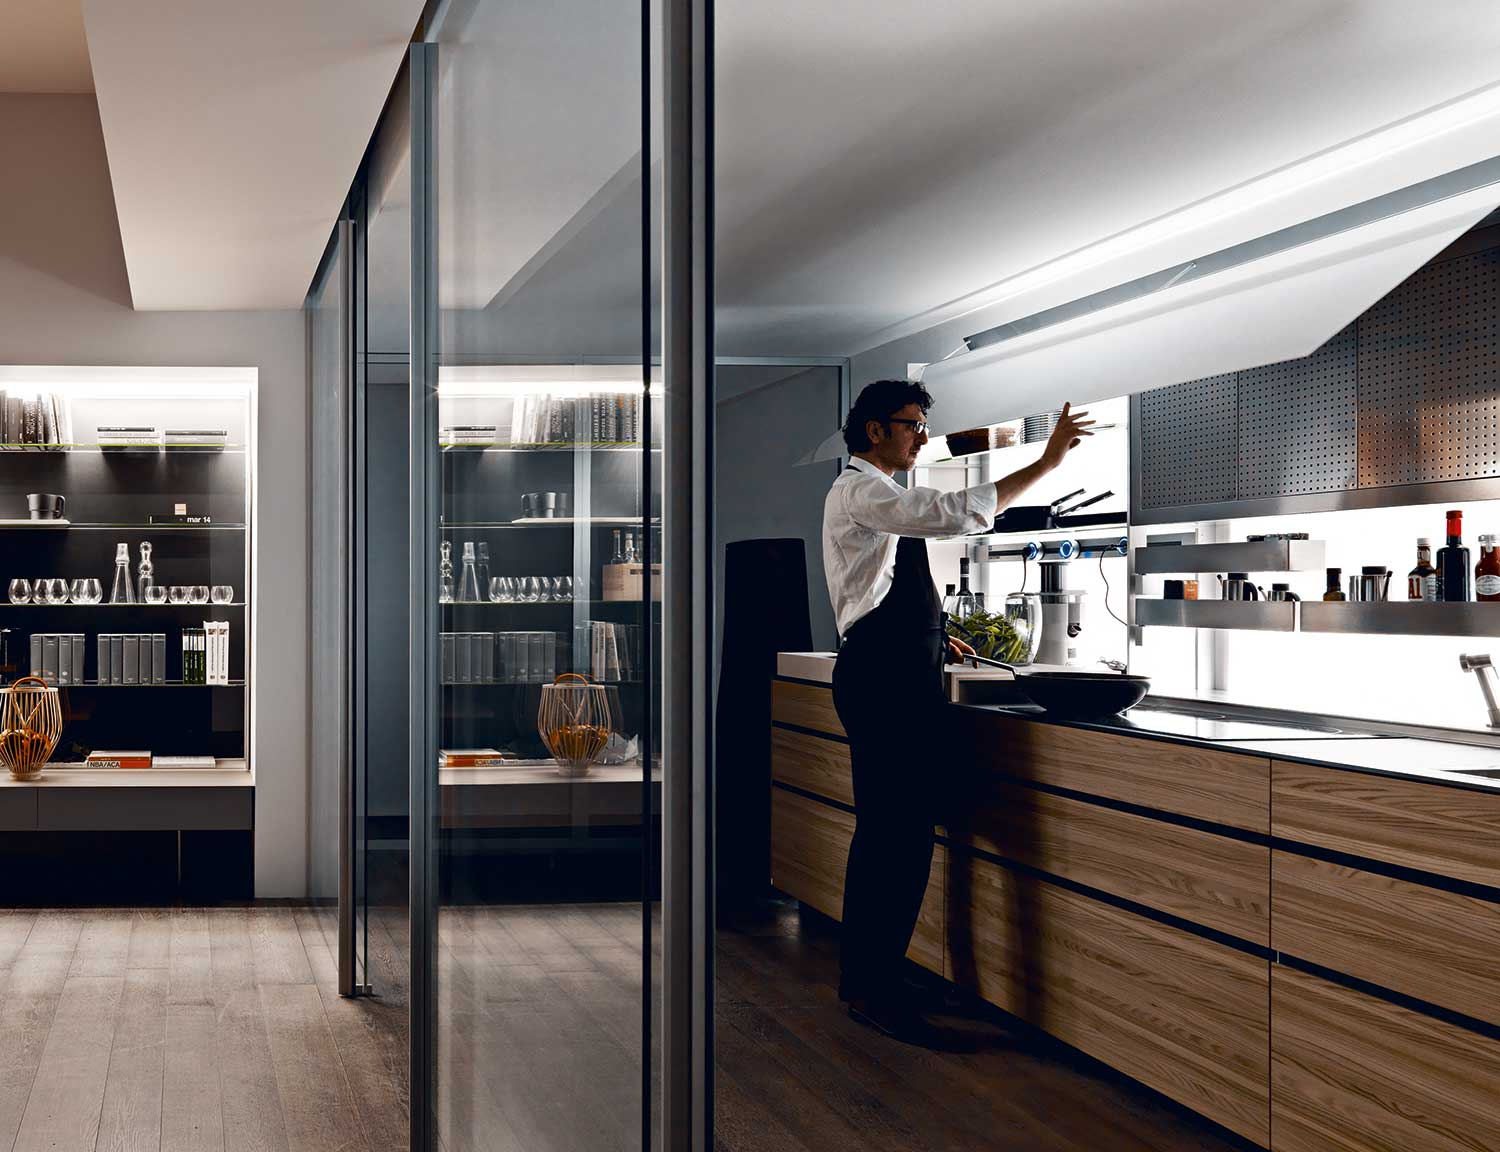 Introducing Valcucine Italian Kitchens at Rogerseller | Yellowtrace.